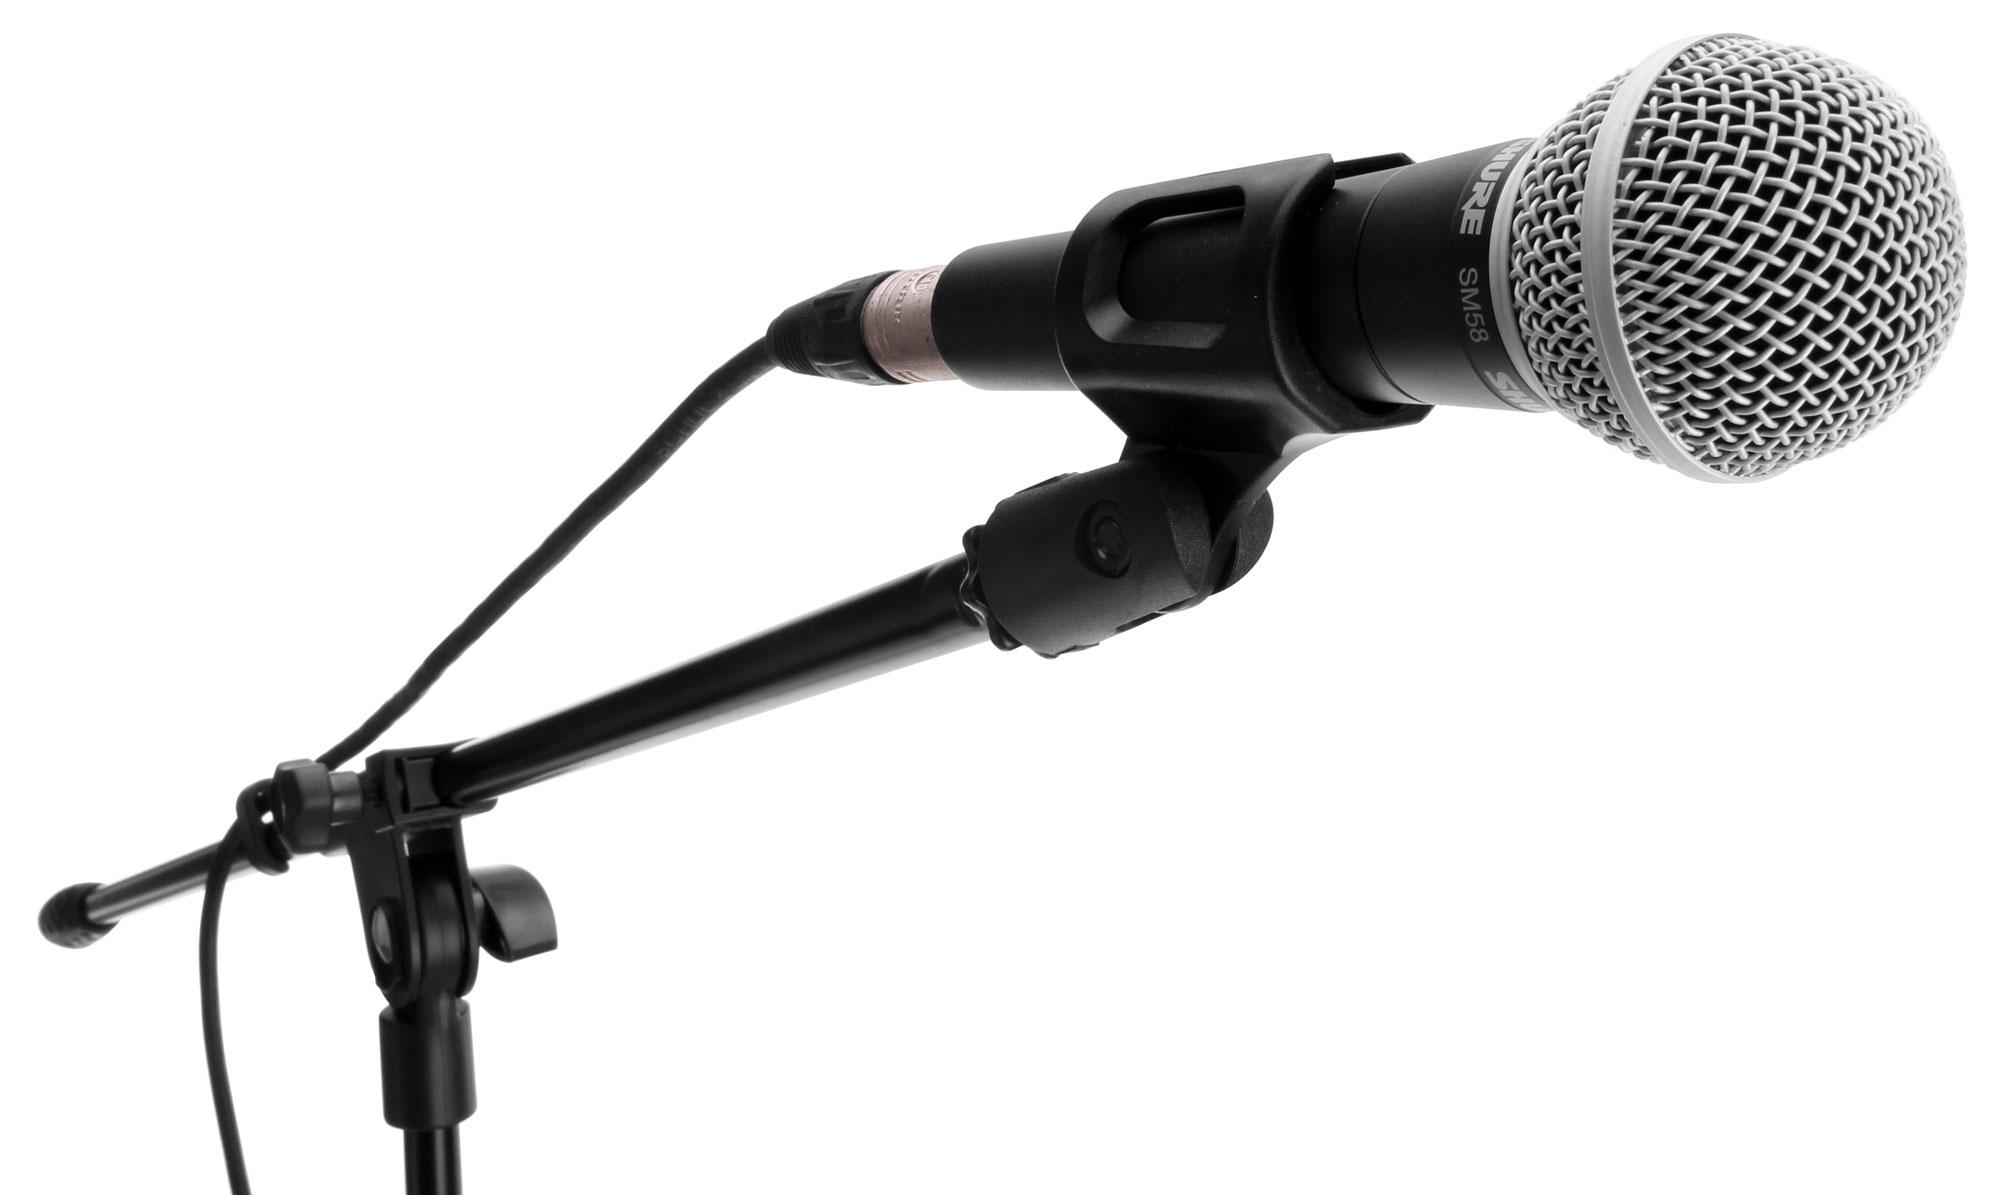 Mcgrey Mbs 01 Microphone Stand With Boom And Microphone Clip